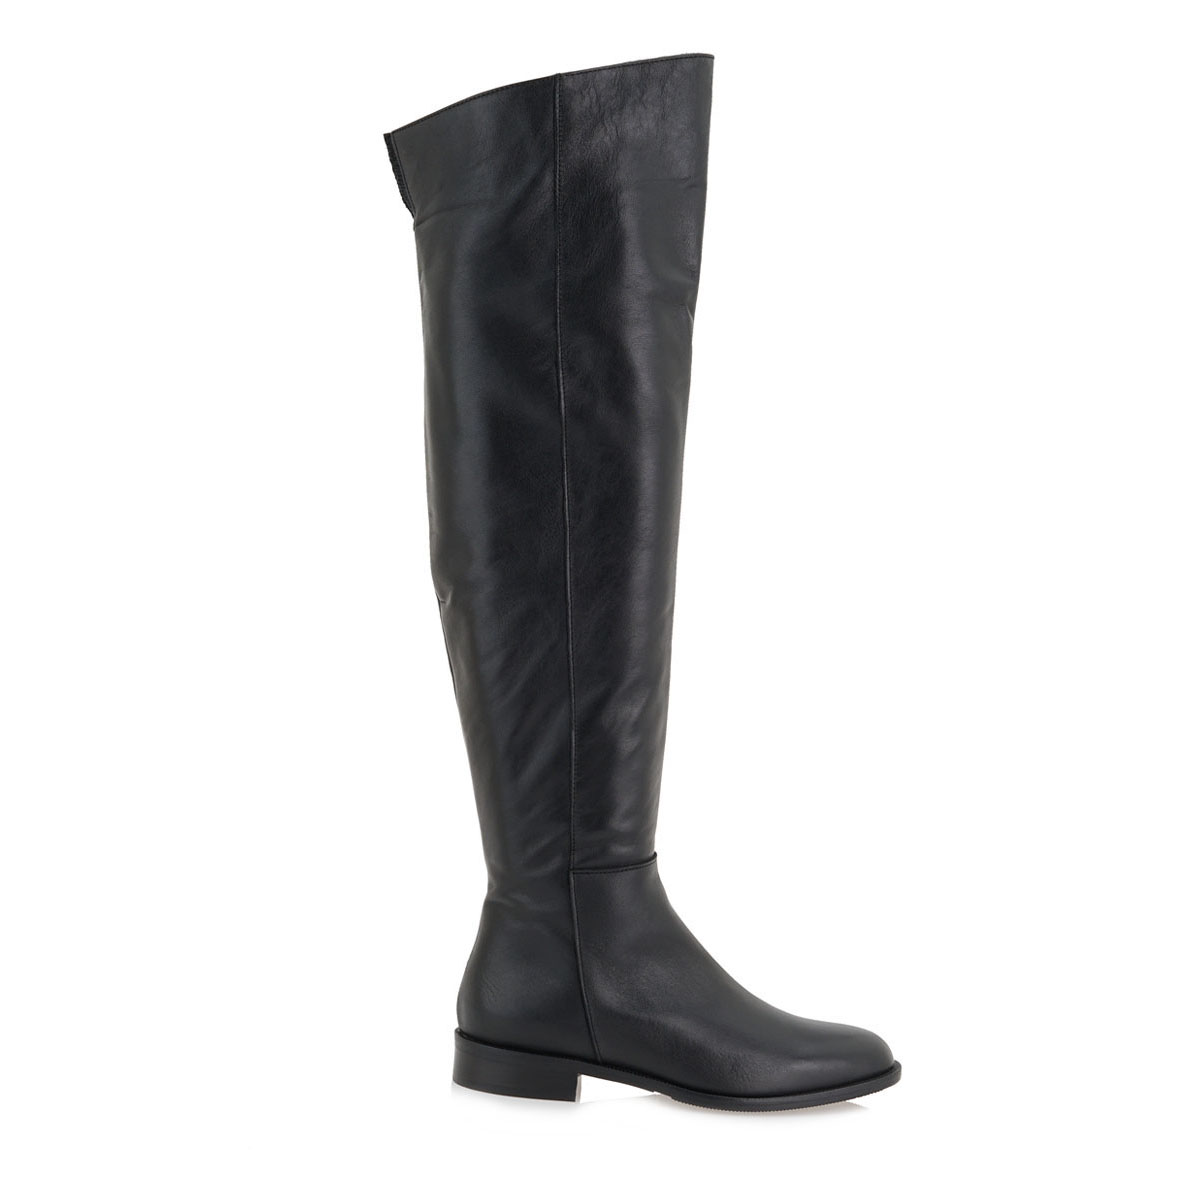 OVER THE KNEE BOOTS σχέδιο: L249S0742